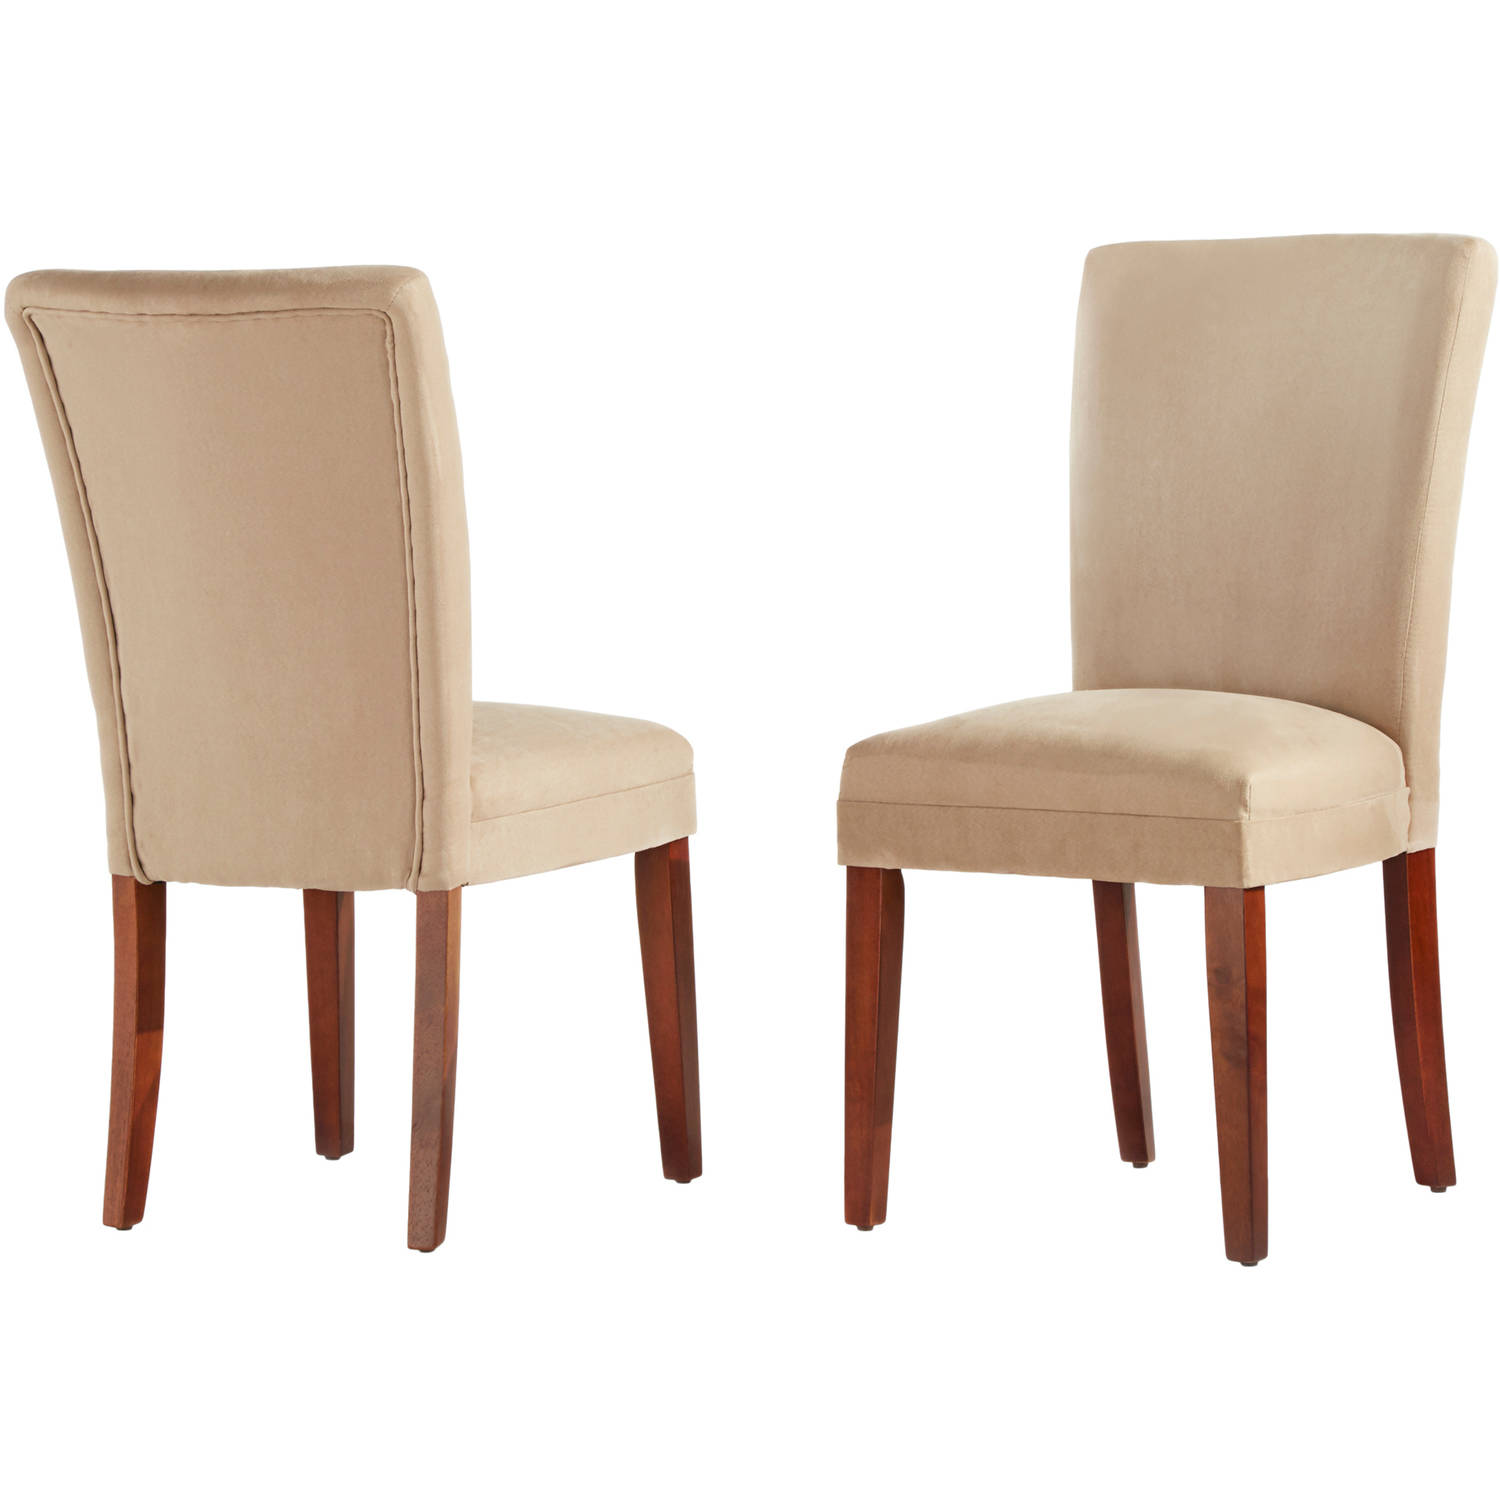 Set Of 2 Parson Dining Chairs, Peat